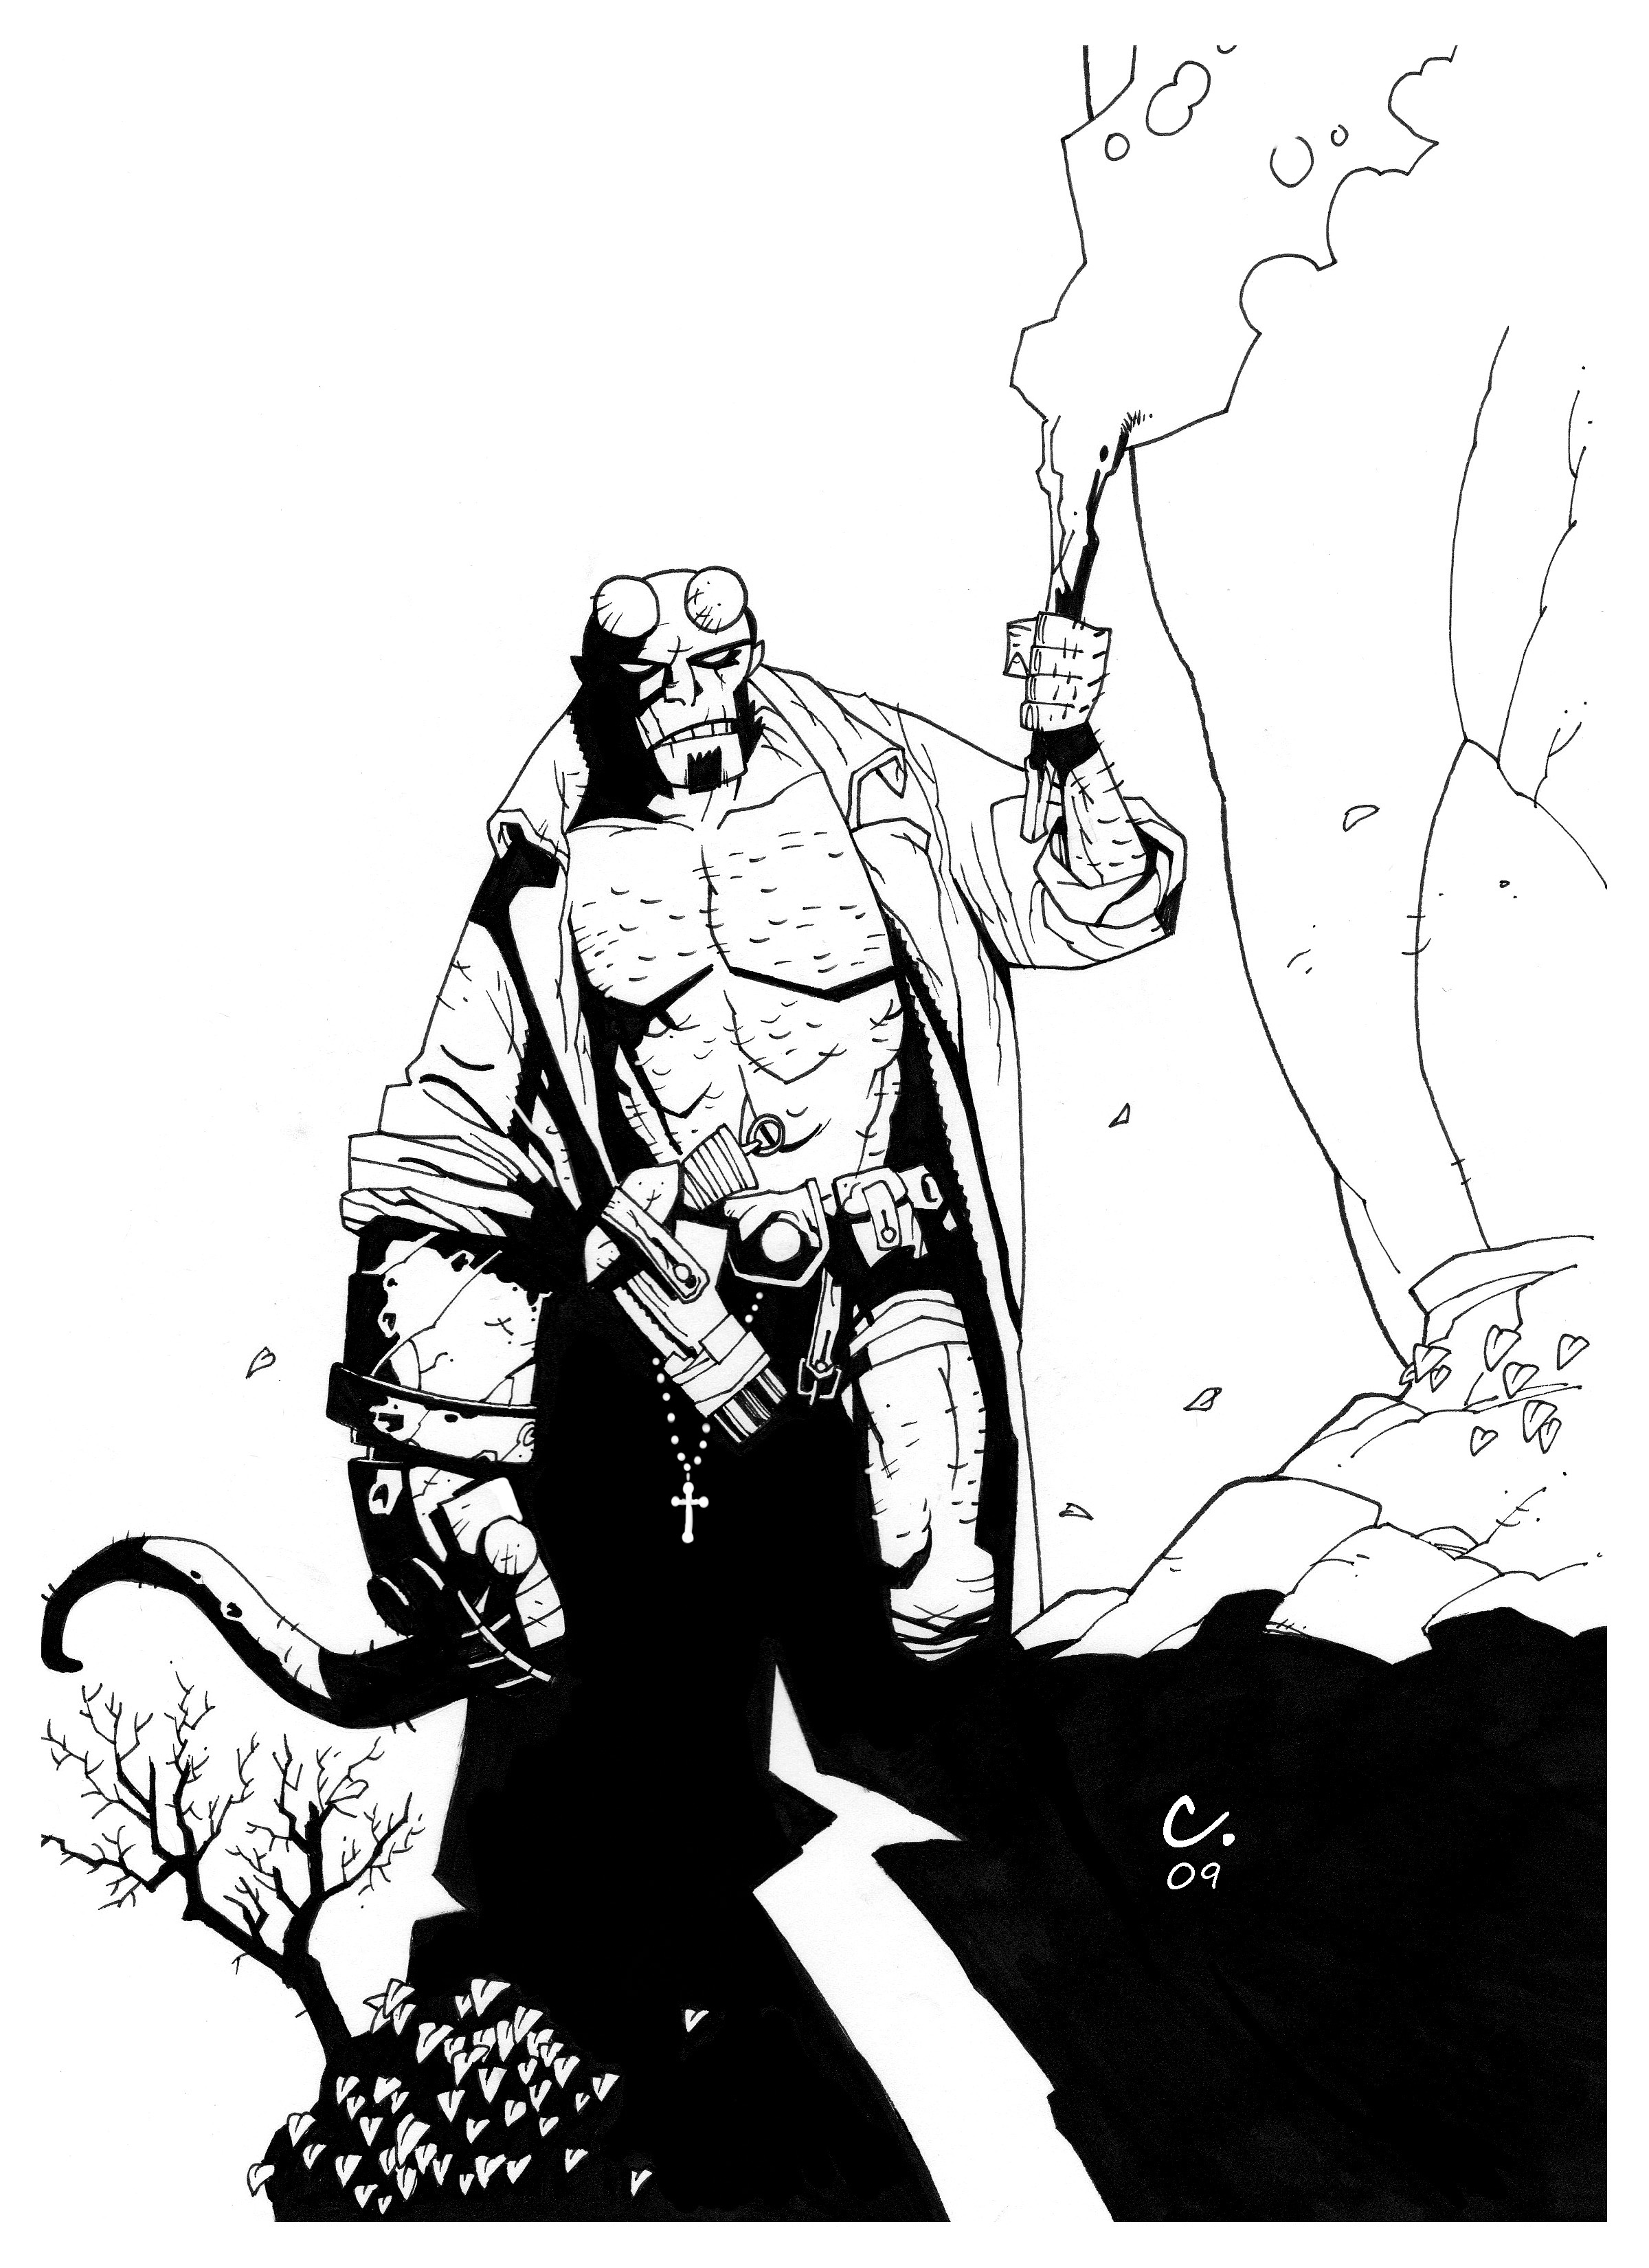 Coloring Pages Hellboy Coloring Pages coloring pages wolverine the avengers and page hellboy free printable